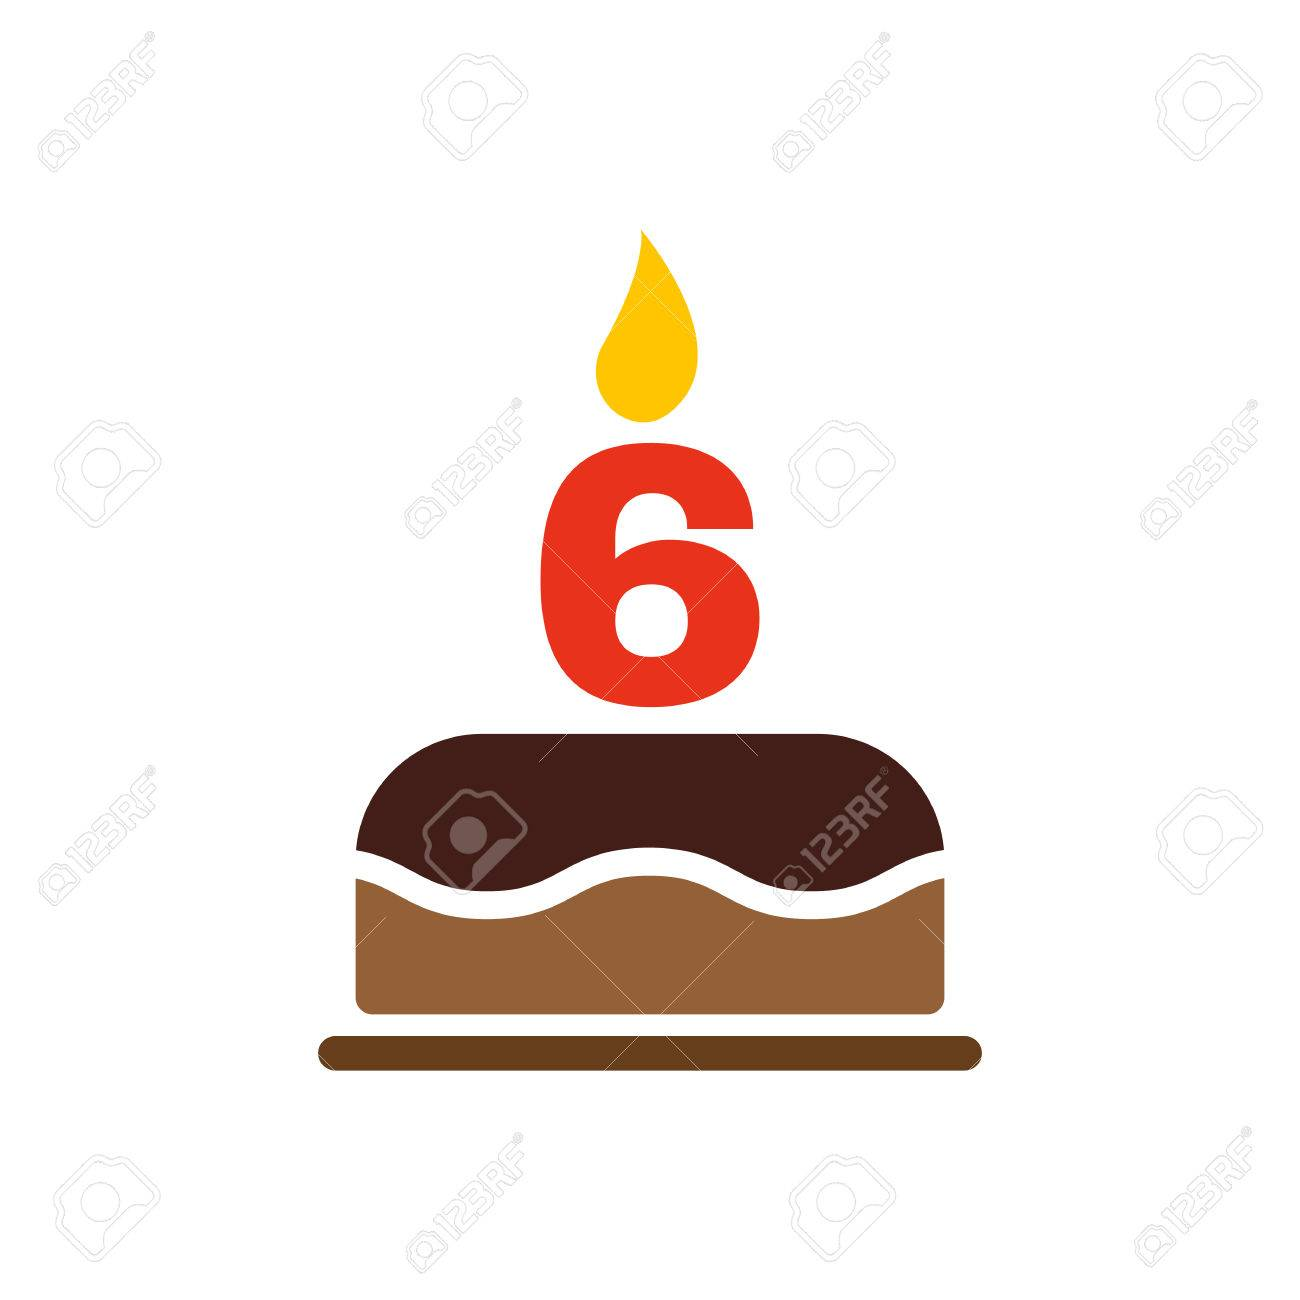 The Birthday Cake With Candles In The Form Of Number 6 Icon